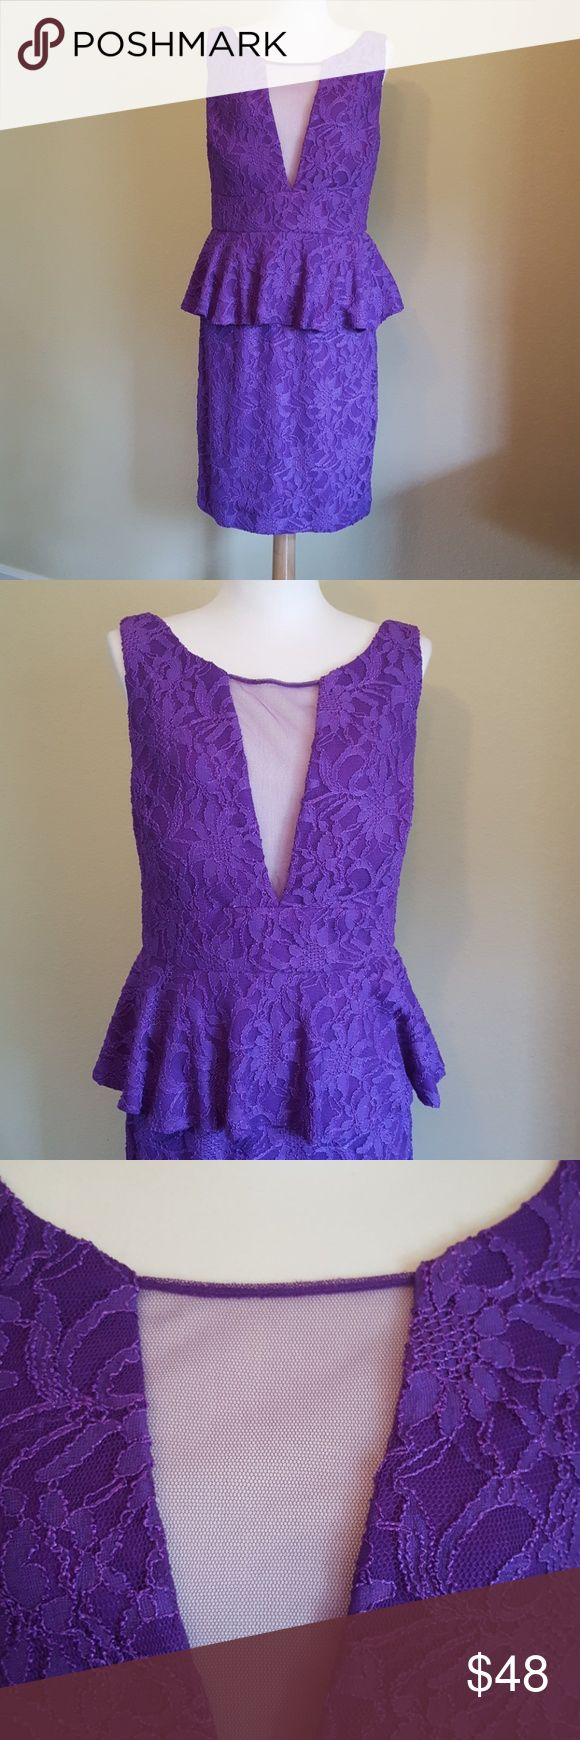 HAILEY by ADRIANNA PAPELL purple lace peplum dress Reposh- purchased for a Prince Purple Rain party and wore something else, so I've never worn it. So cute! This is a true royal purple color. Lace with mesh inset at cleavage and a peplum waist. Hits above knee. Hailey by Adrianna Papell is her lowerzpriced line, which I was not aware of. I would classify this as being that lower-line quality as well (think Eliza J level). Great for weddings, parties, high school proms, homecomings, or Prince…